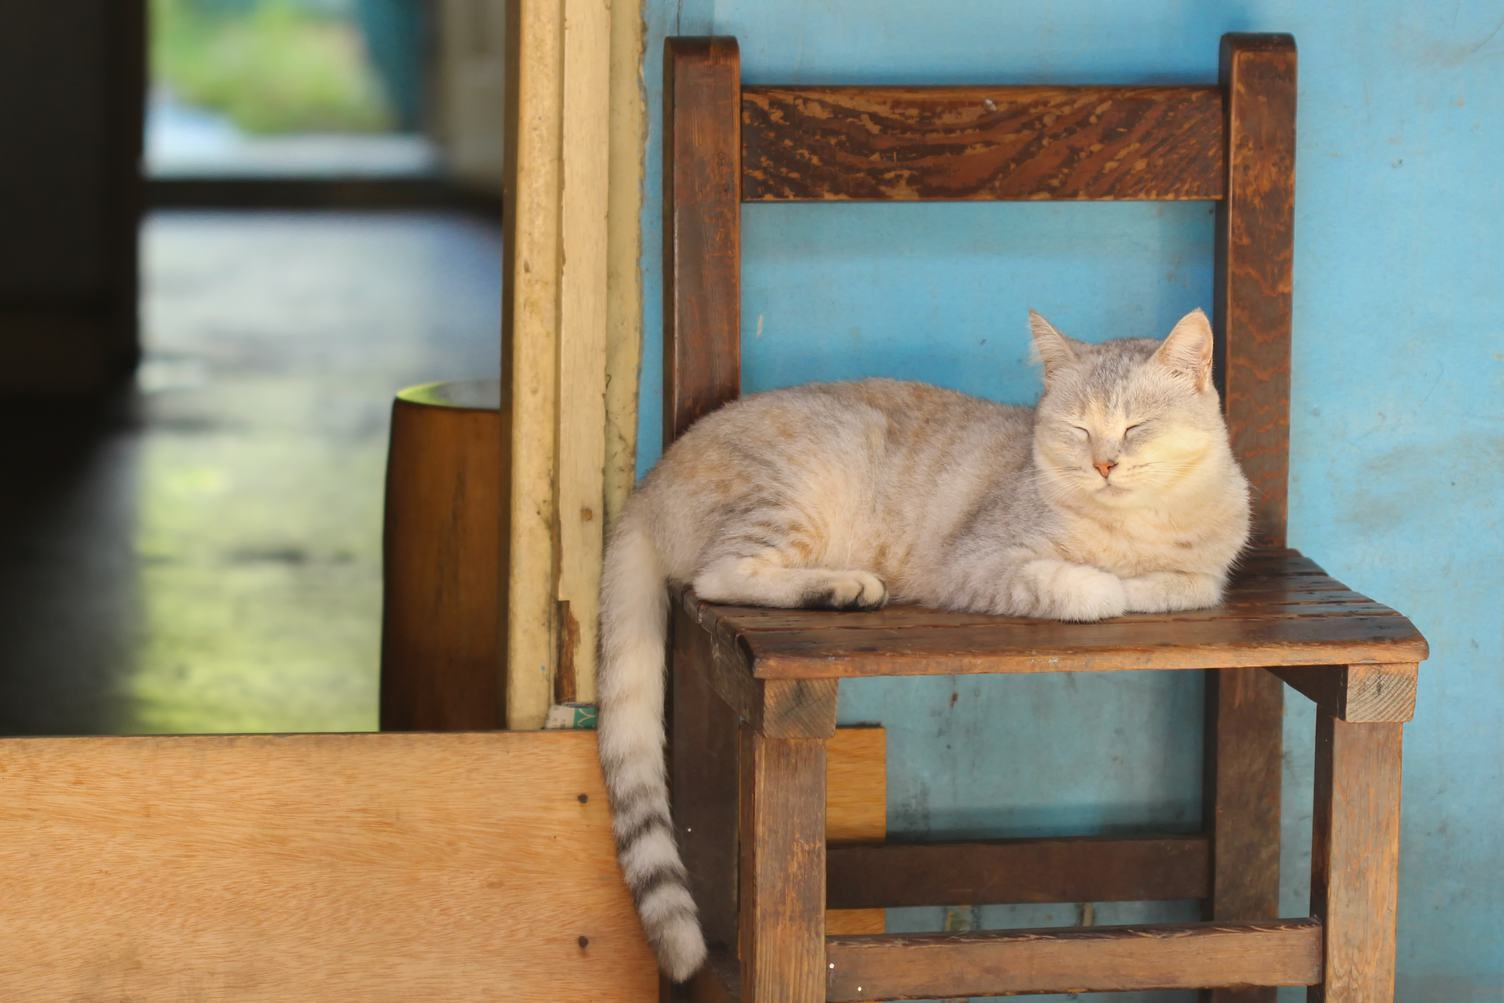 Cat Laying on a Chair Outdoors